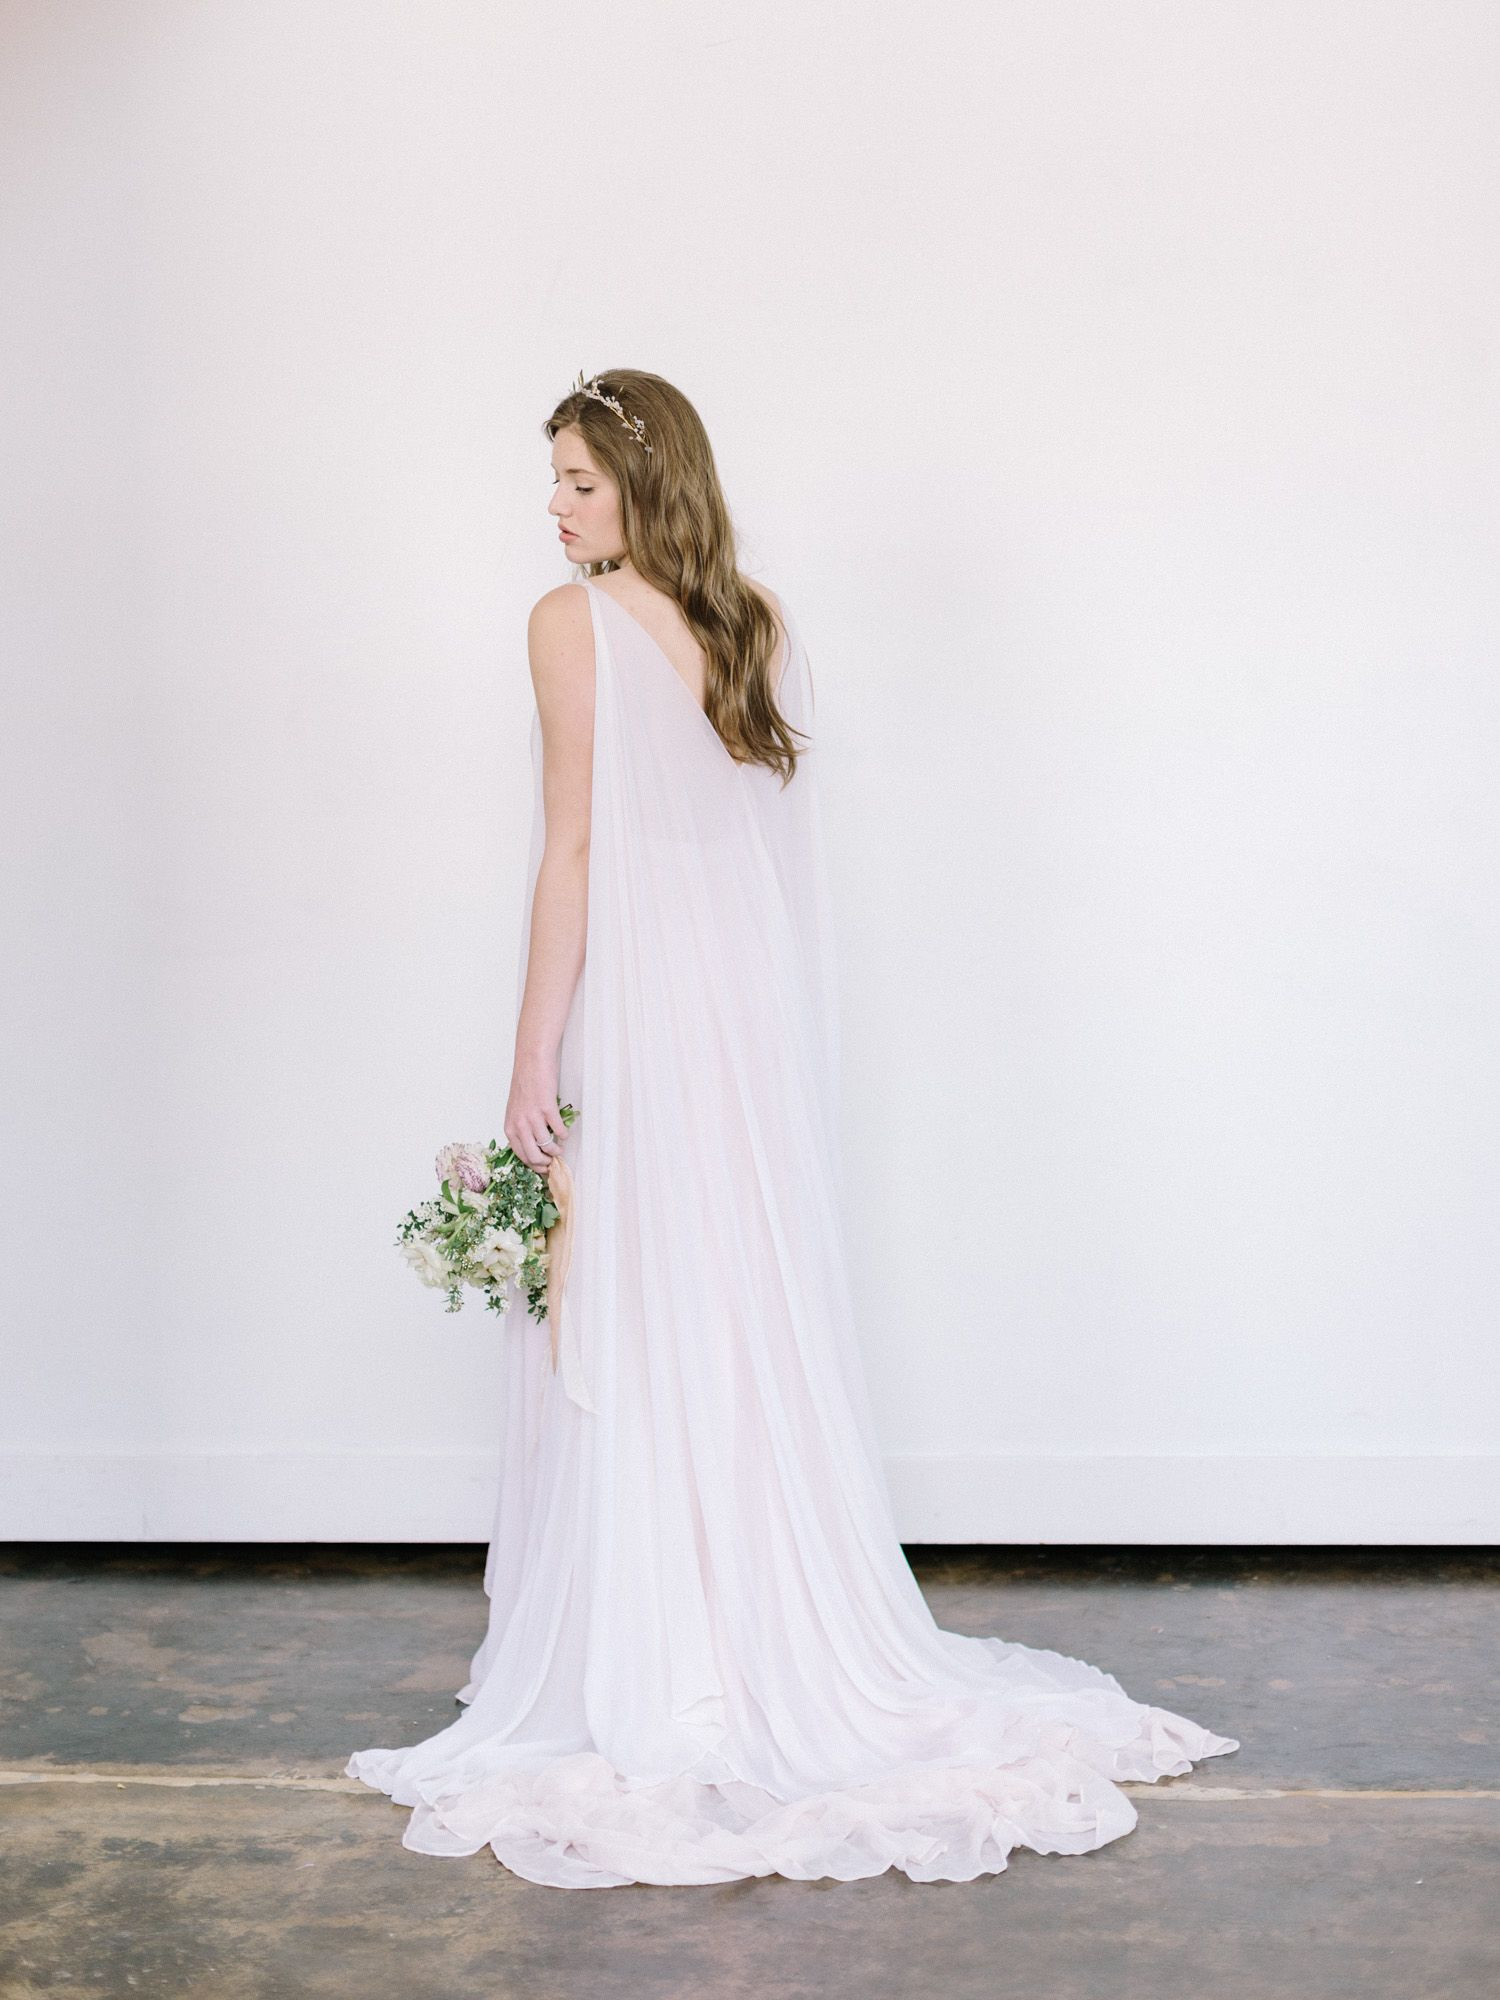 Welcoming Spring In Salt Lake City Movement White Space Wild Florals Christina Harrison Photography Grecian Wedding Dress Leanne Marshall Wedding Dresses Grecian Wedding [ 2000 x 1500 Pixel ]